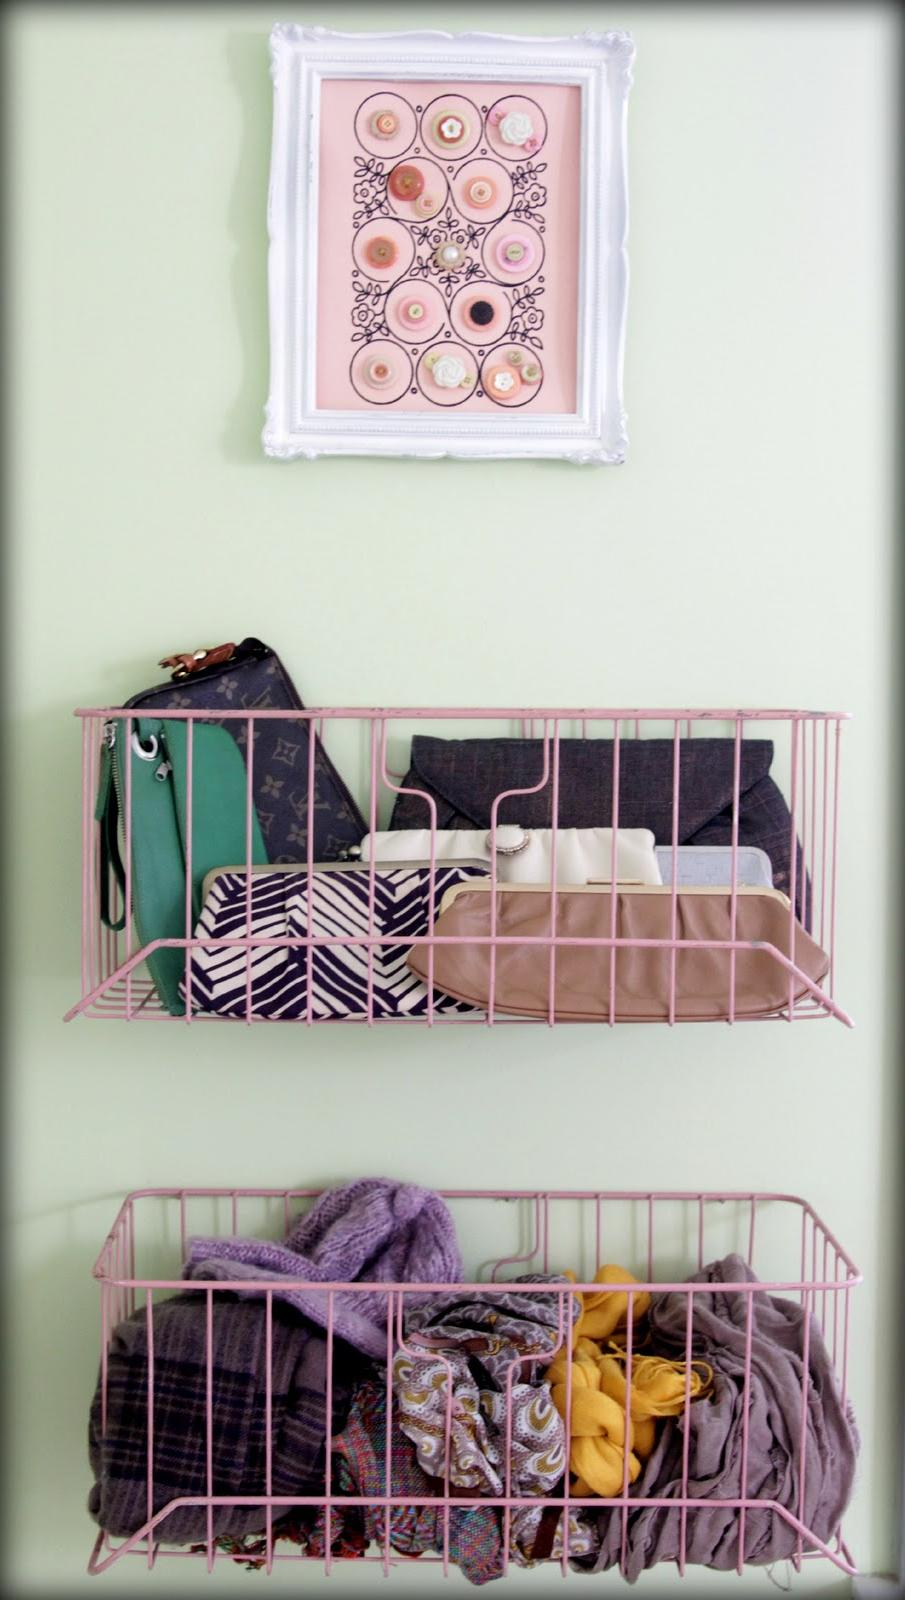 Supplementry Storage Baskets